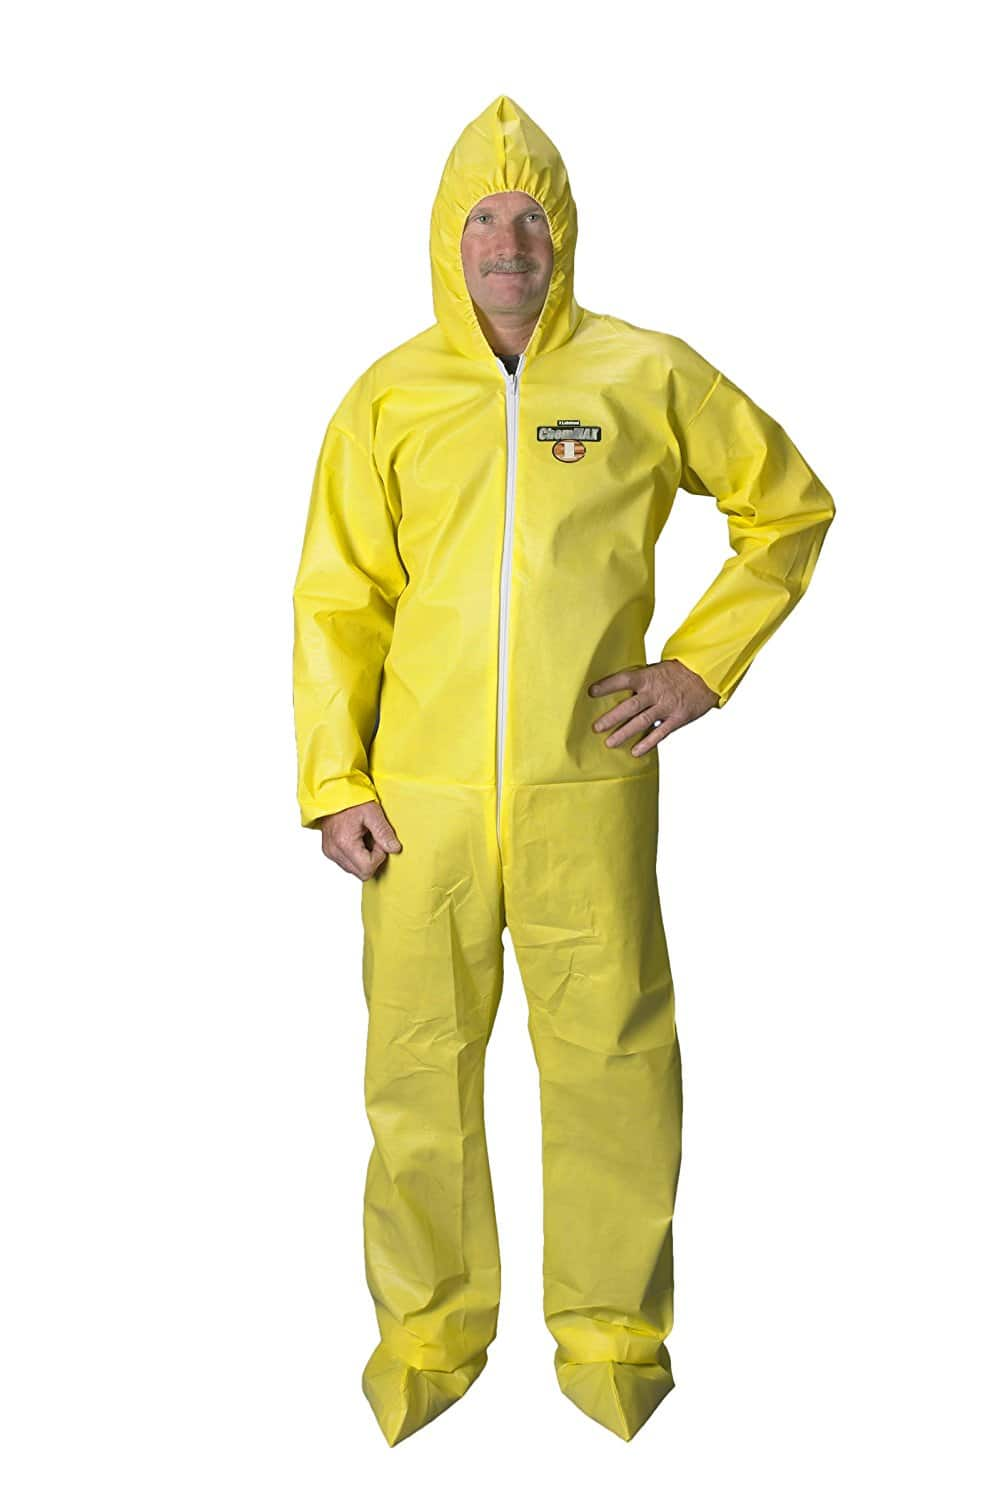 Lakeland ChemMax 1 Chemical Coverall with Hood and Boots - Case of 25 for $99 ($4/each) - FS with Prime - 2XL/3XL only